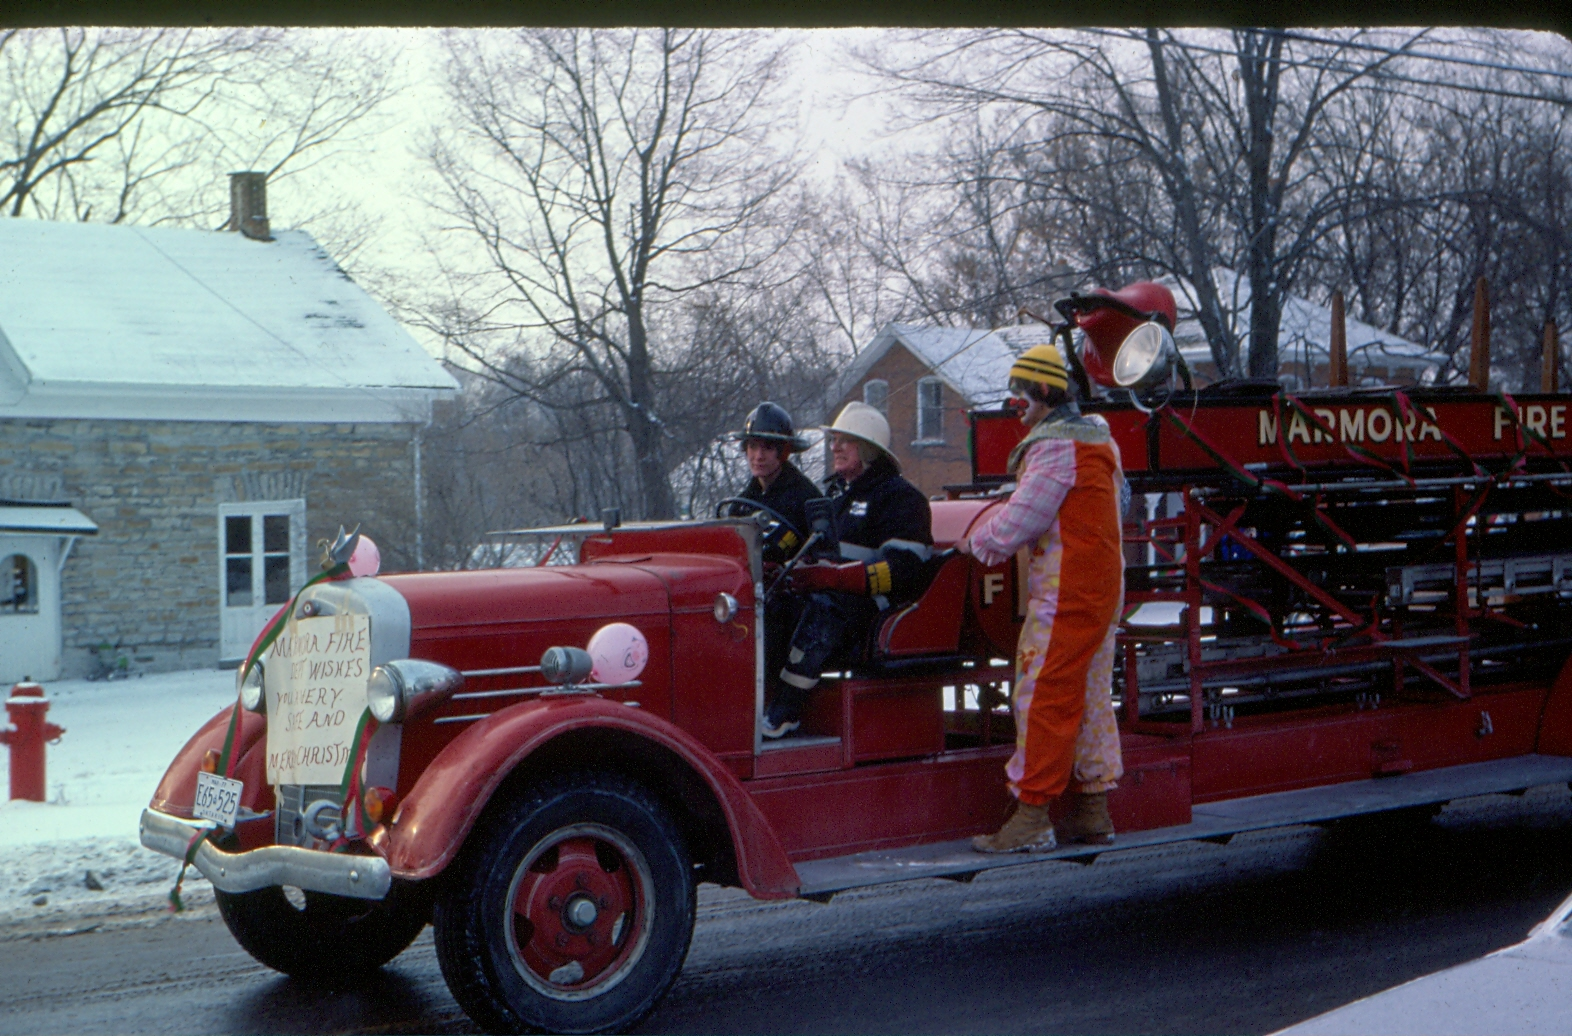 Rick Airhart, Les McKeown driving and Robert Derry, in front of 47 Forsyth St, Marmora